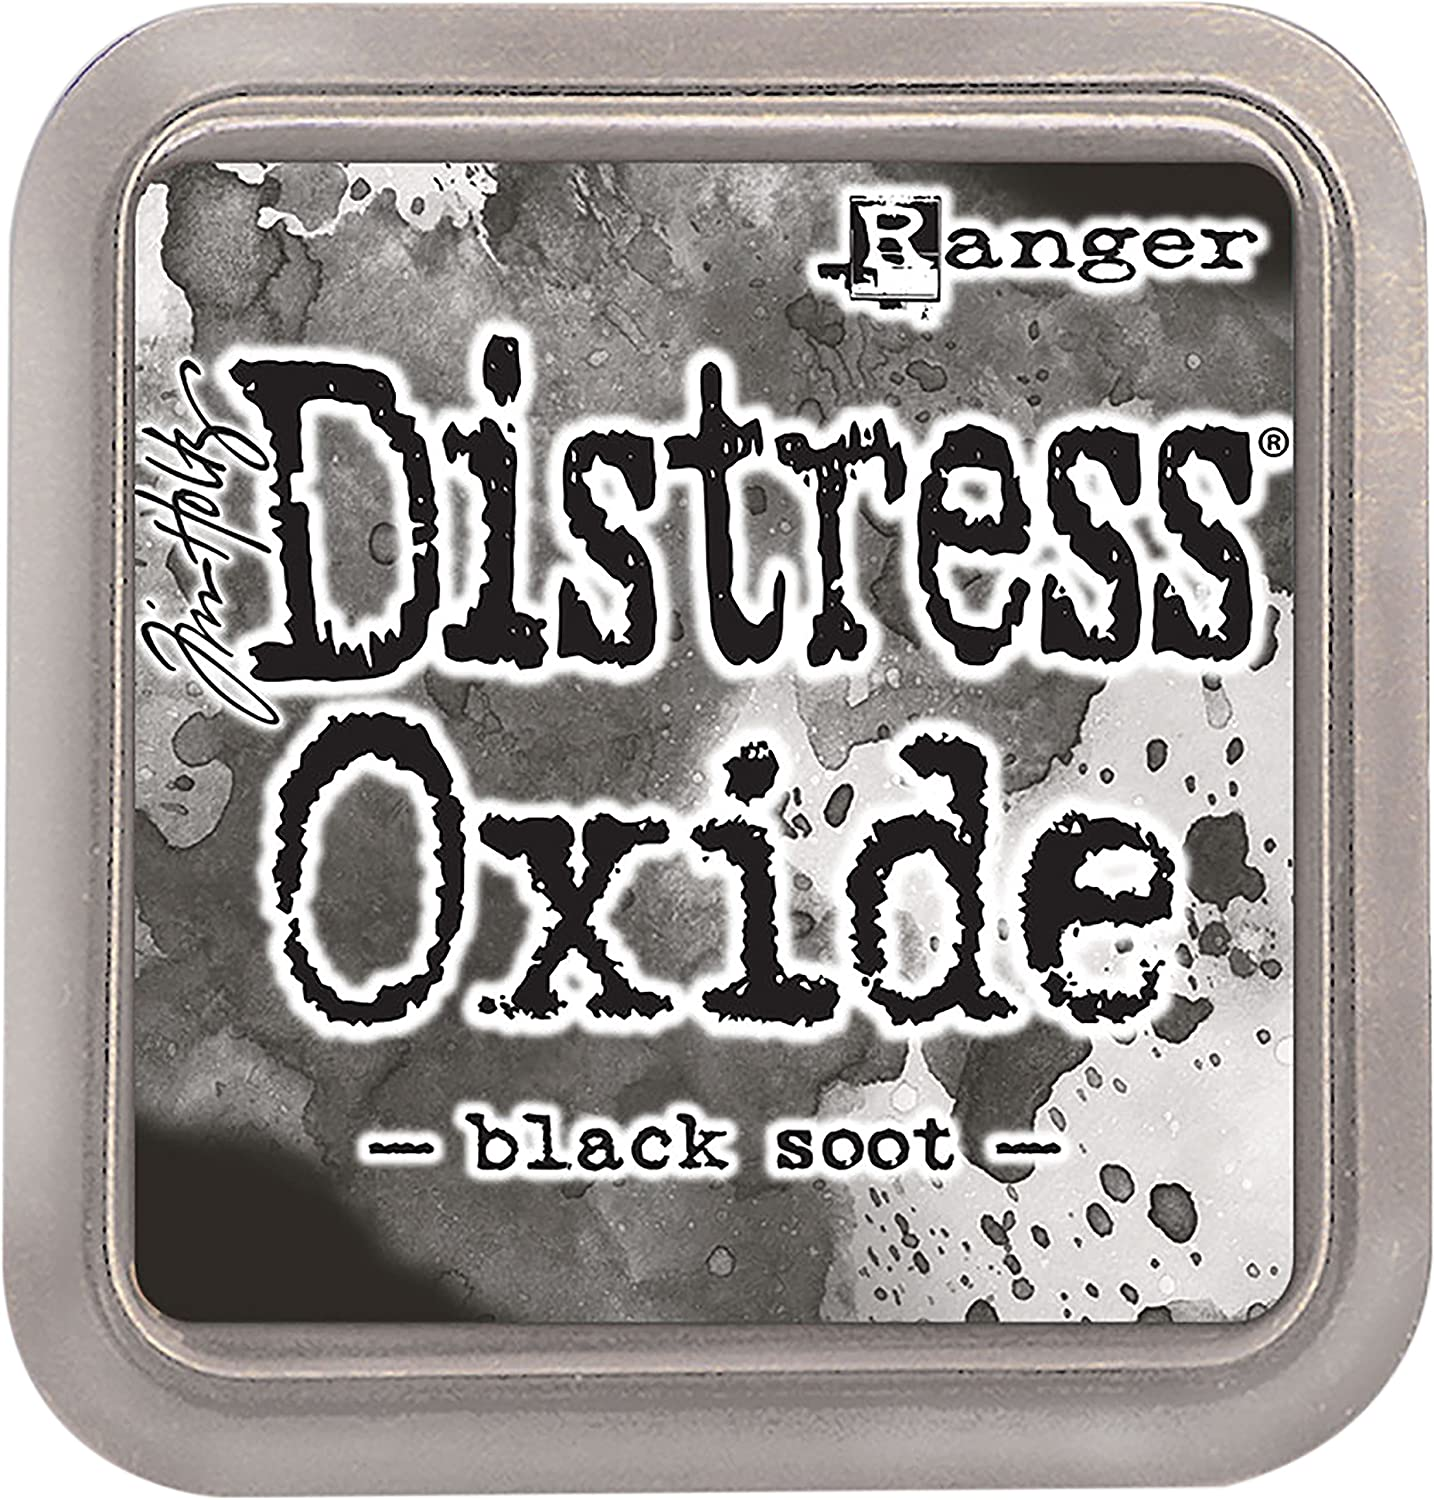 Ranger Black Soot Distress Oxide Ink Pad, Synthetic Material, 7.5 x 7.5 x 1.9 cm TDO55815